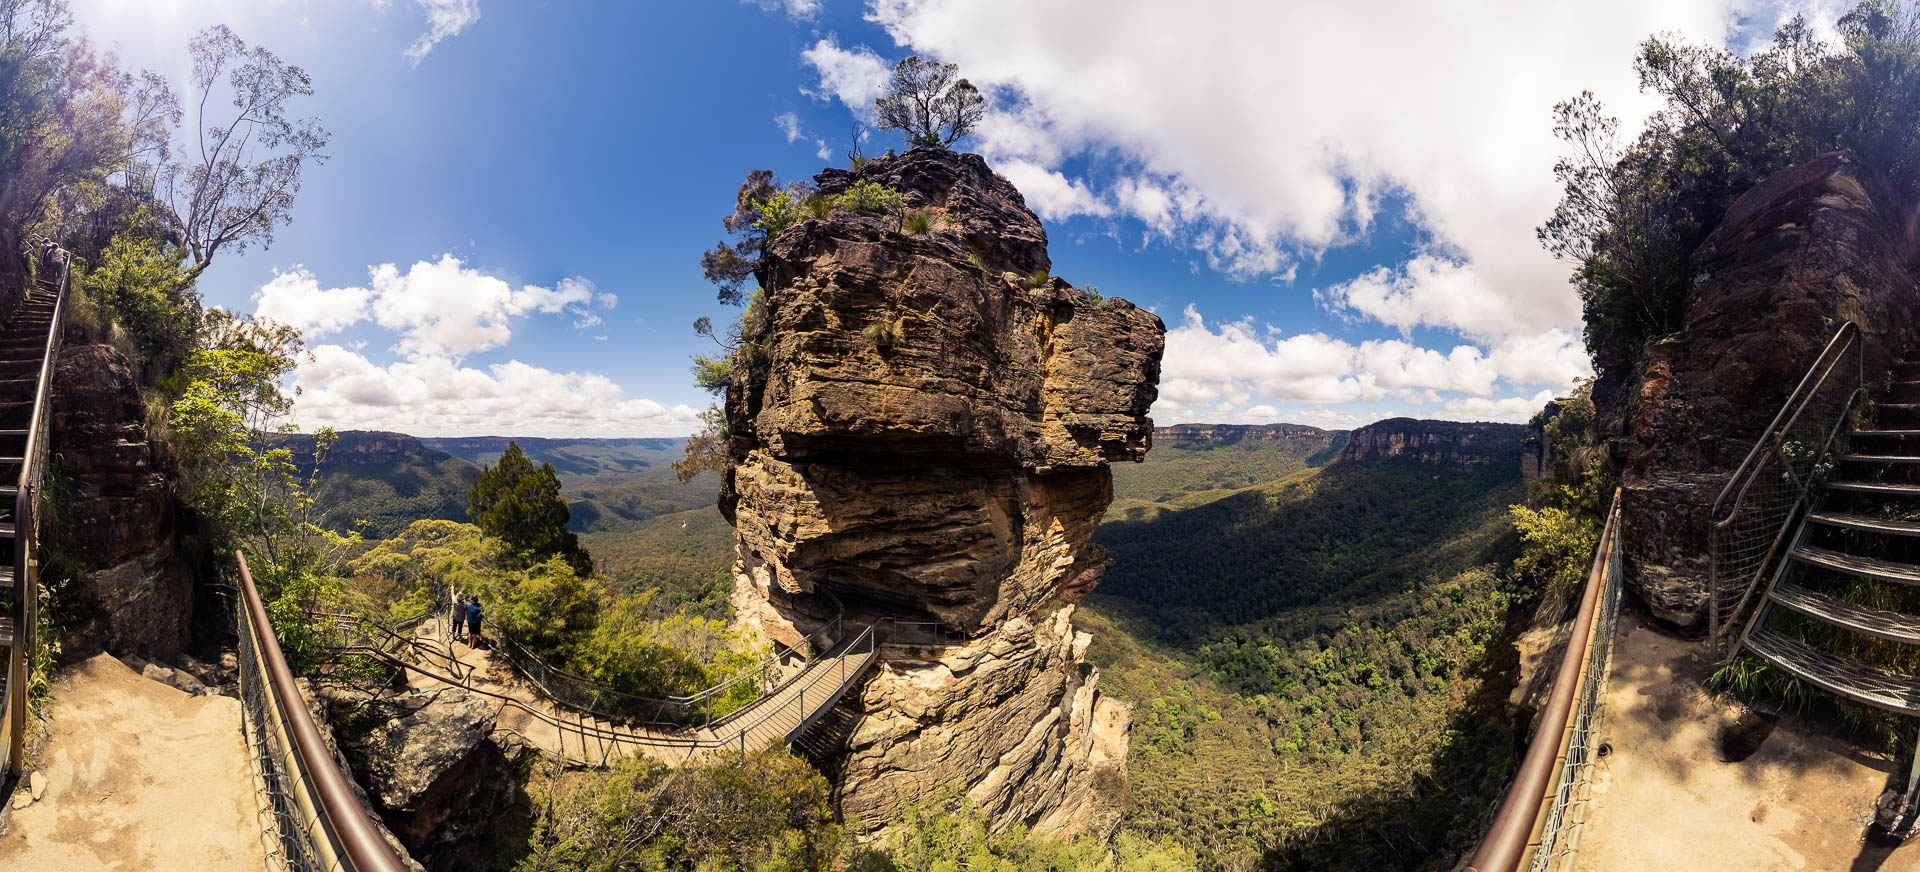 Three Sisters Blue Mountain by Tobi Bohn Panorama 360 Fotograf